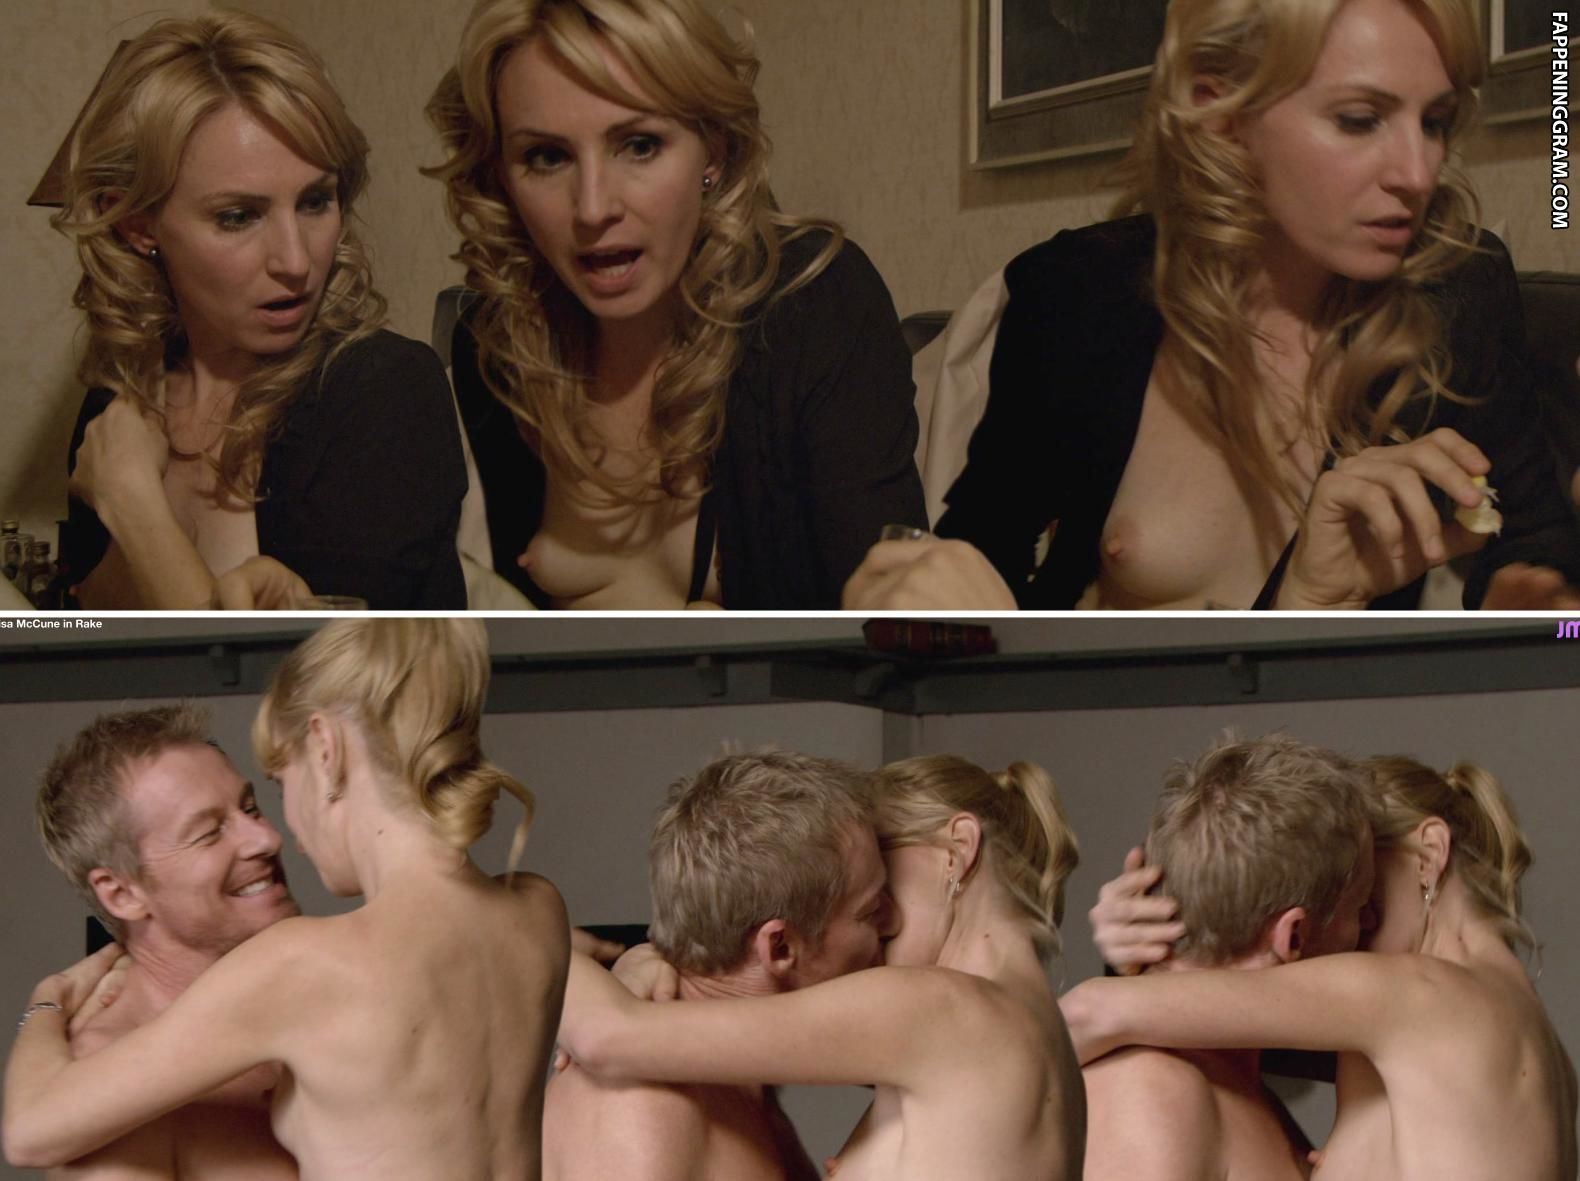 Wild lisa mccune's hot kinky blowjob photo